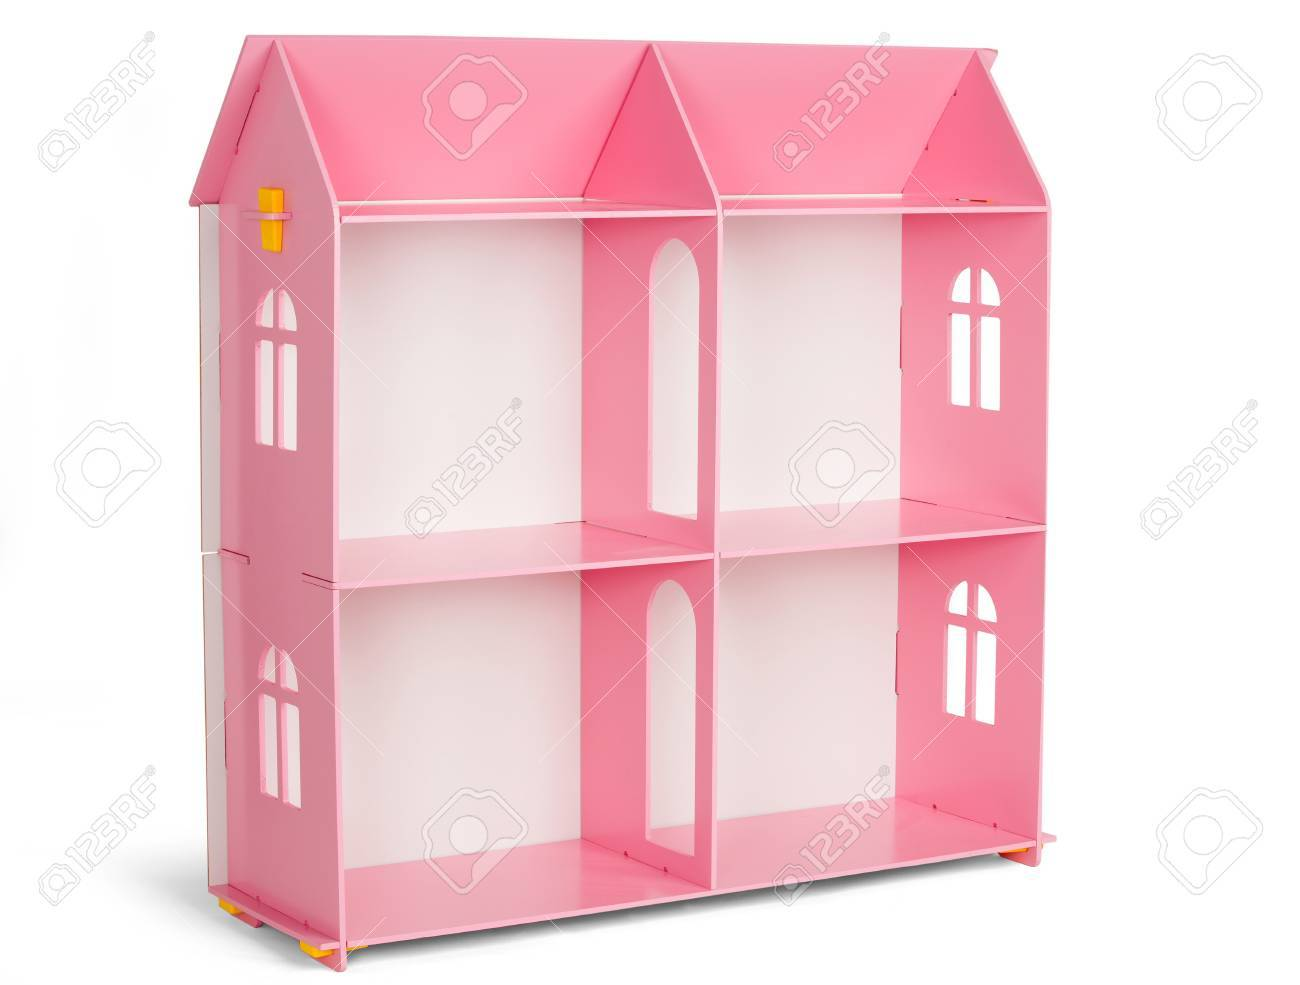 Toys Furniture Pink Wooden Dollhouse Isolated On White Background